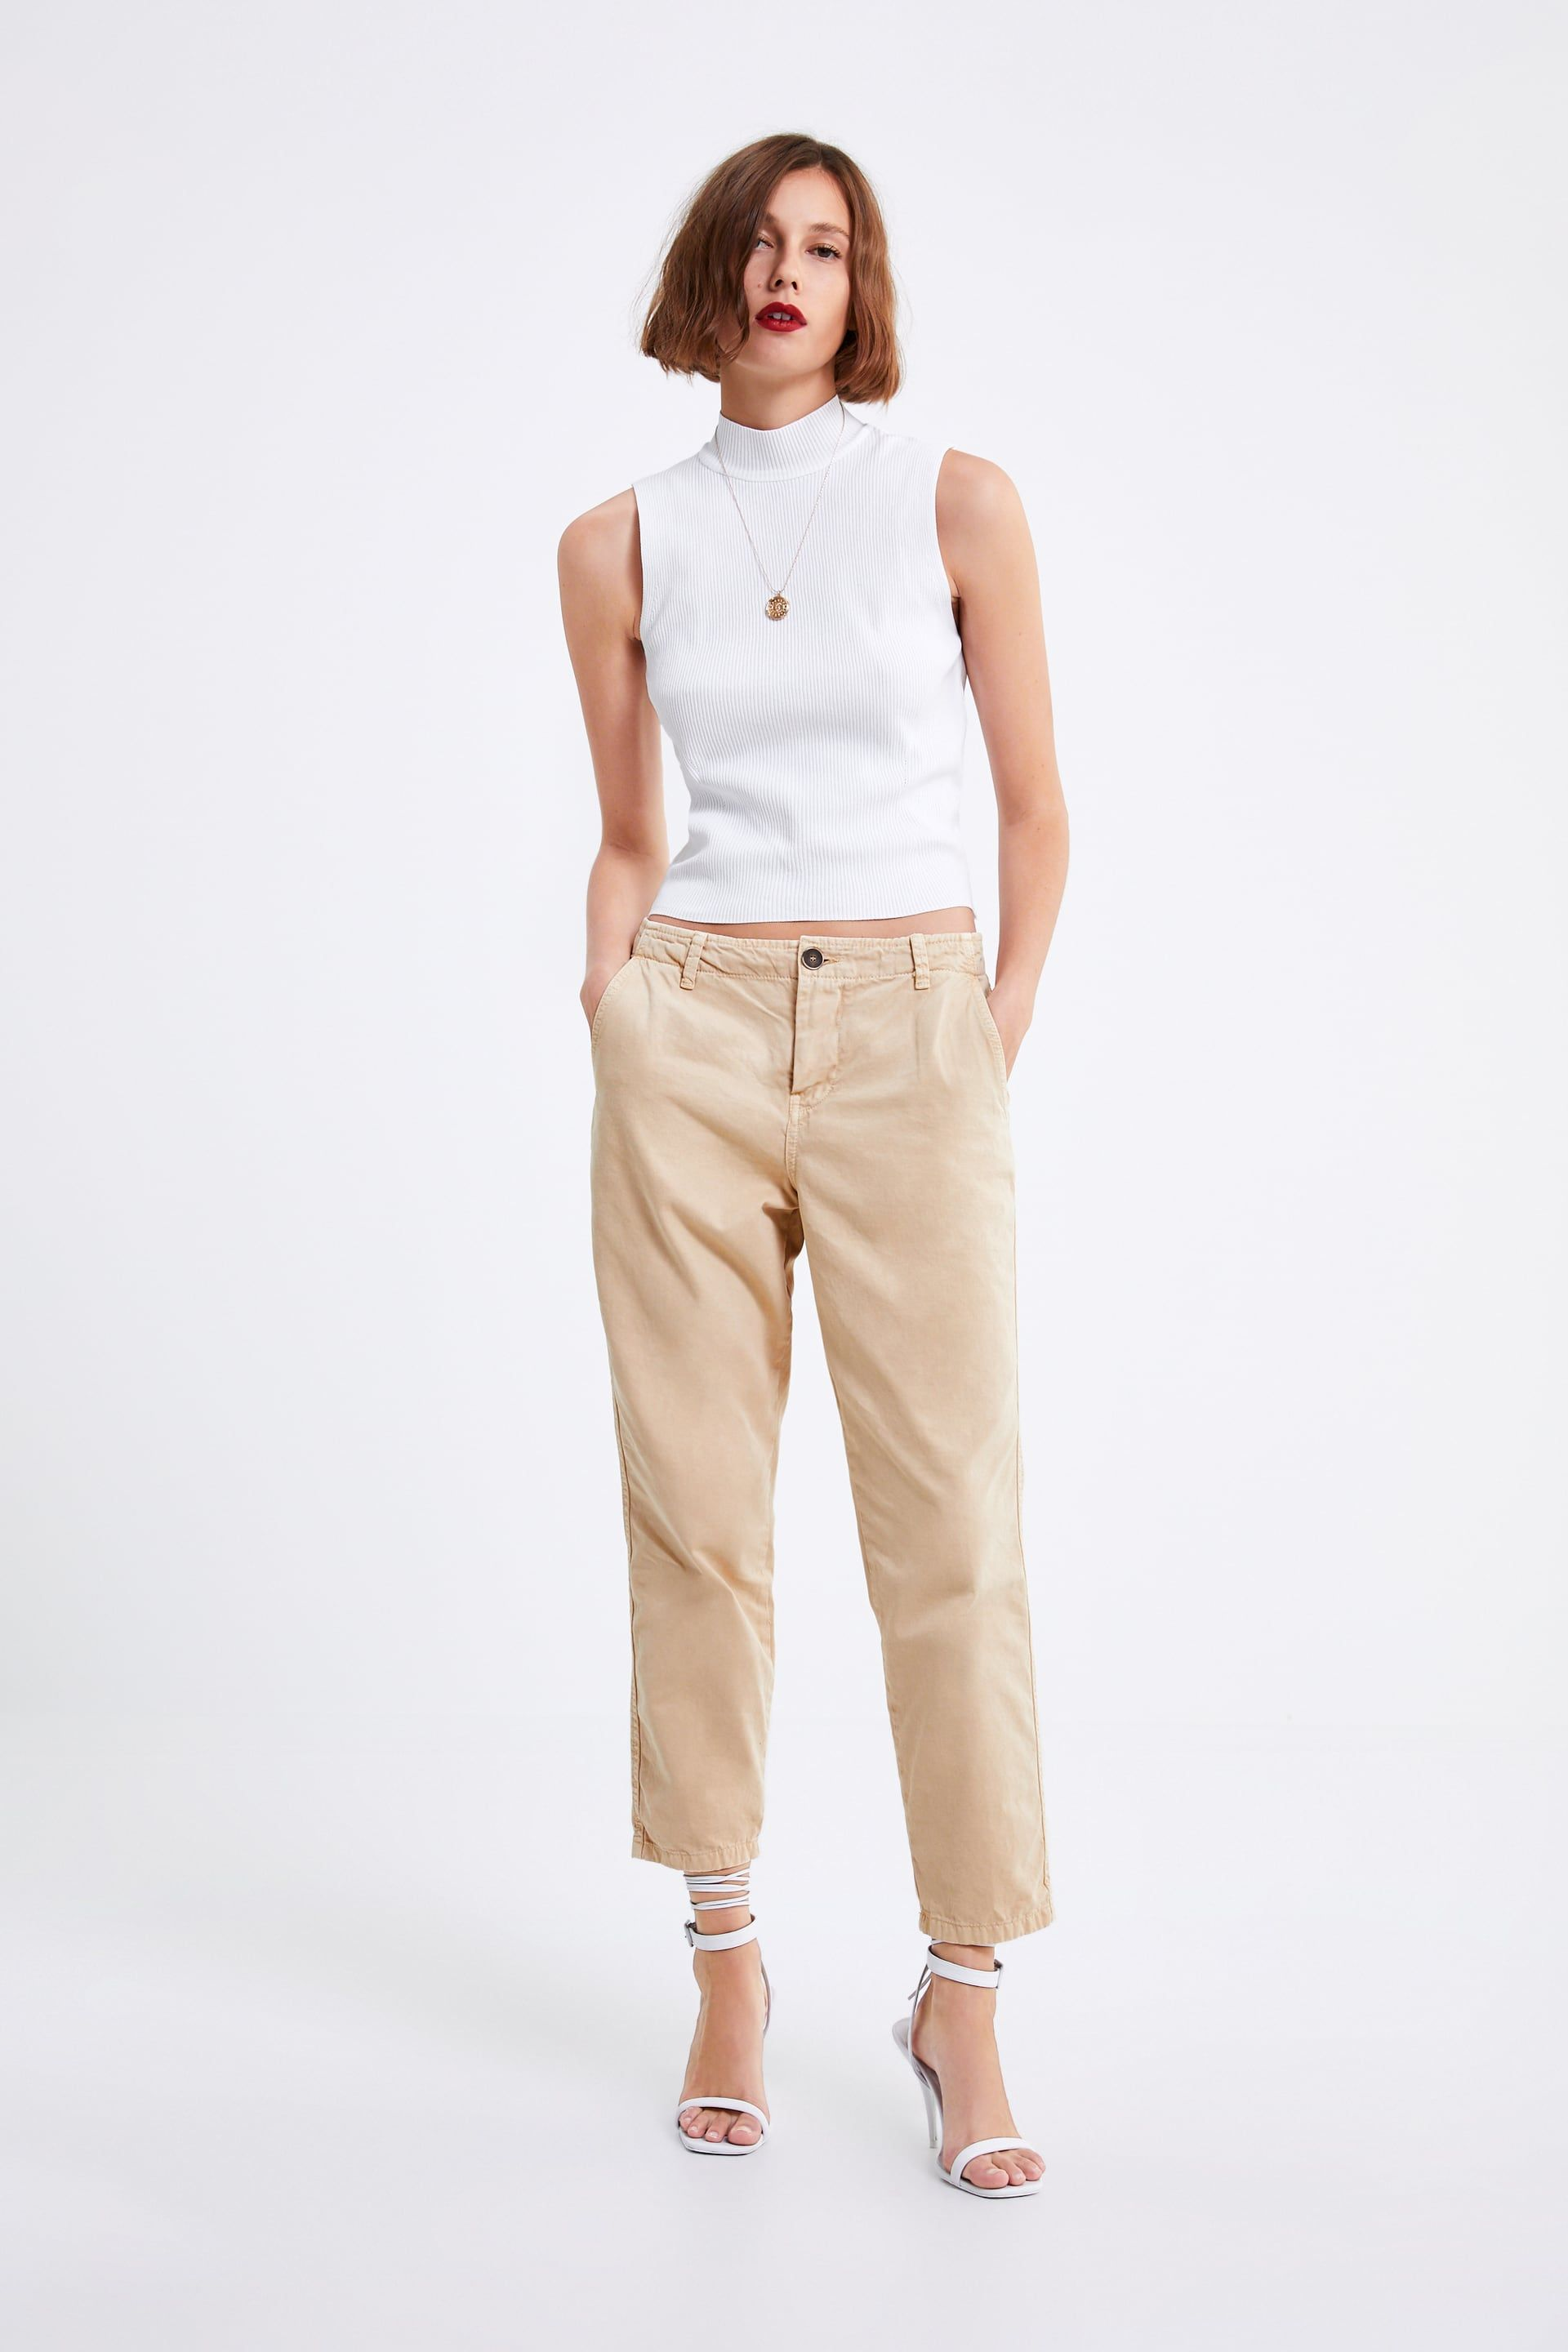 ab1b5e6293 ZW PREMIUM NEW CHINO JEANS - WHITE COLLECTION-WOMAN | ZARA United ...